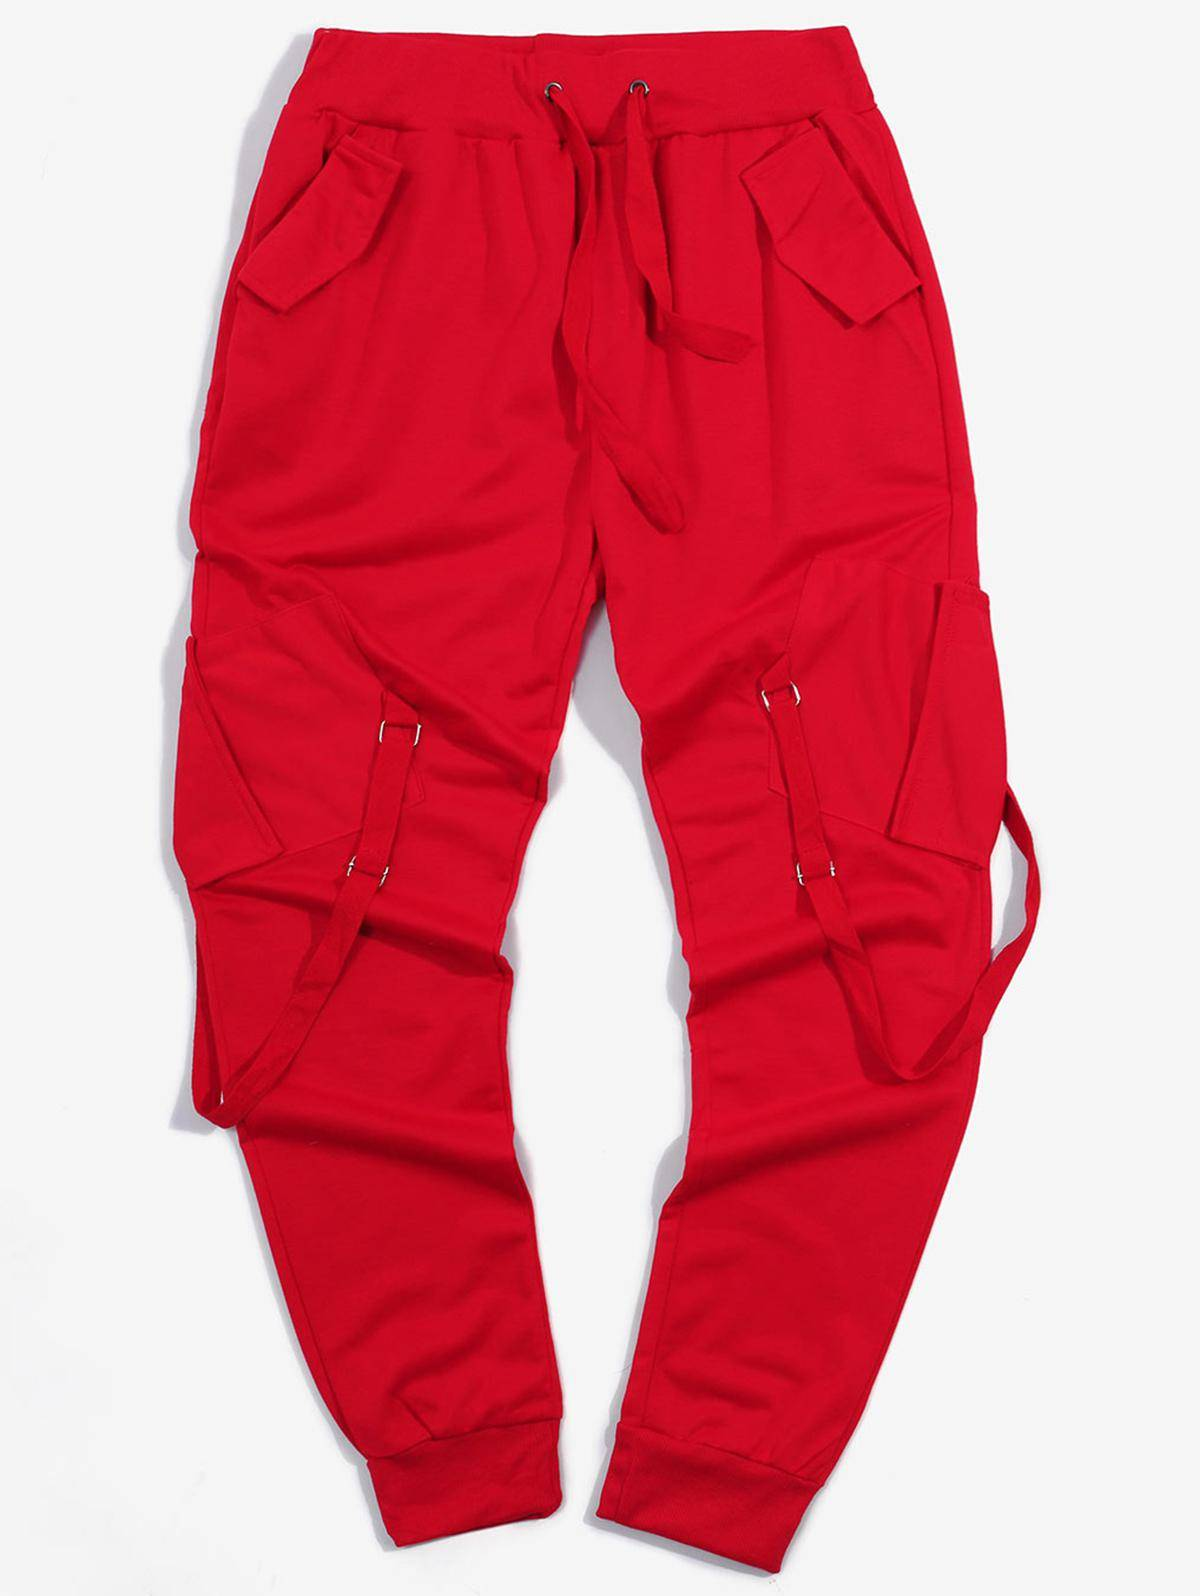 Ribbon Pockets Long Elastic Sport Cargo Pants in RED - Size: 3X-Large